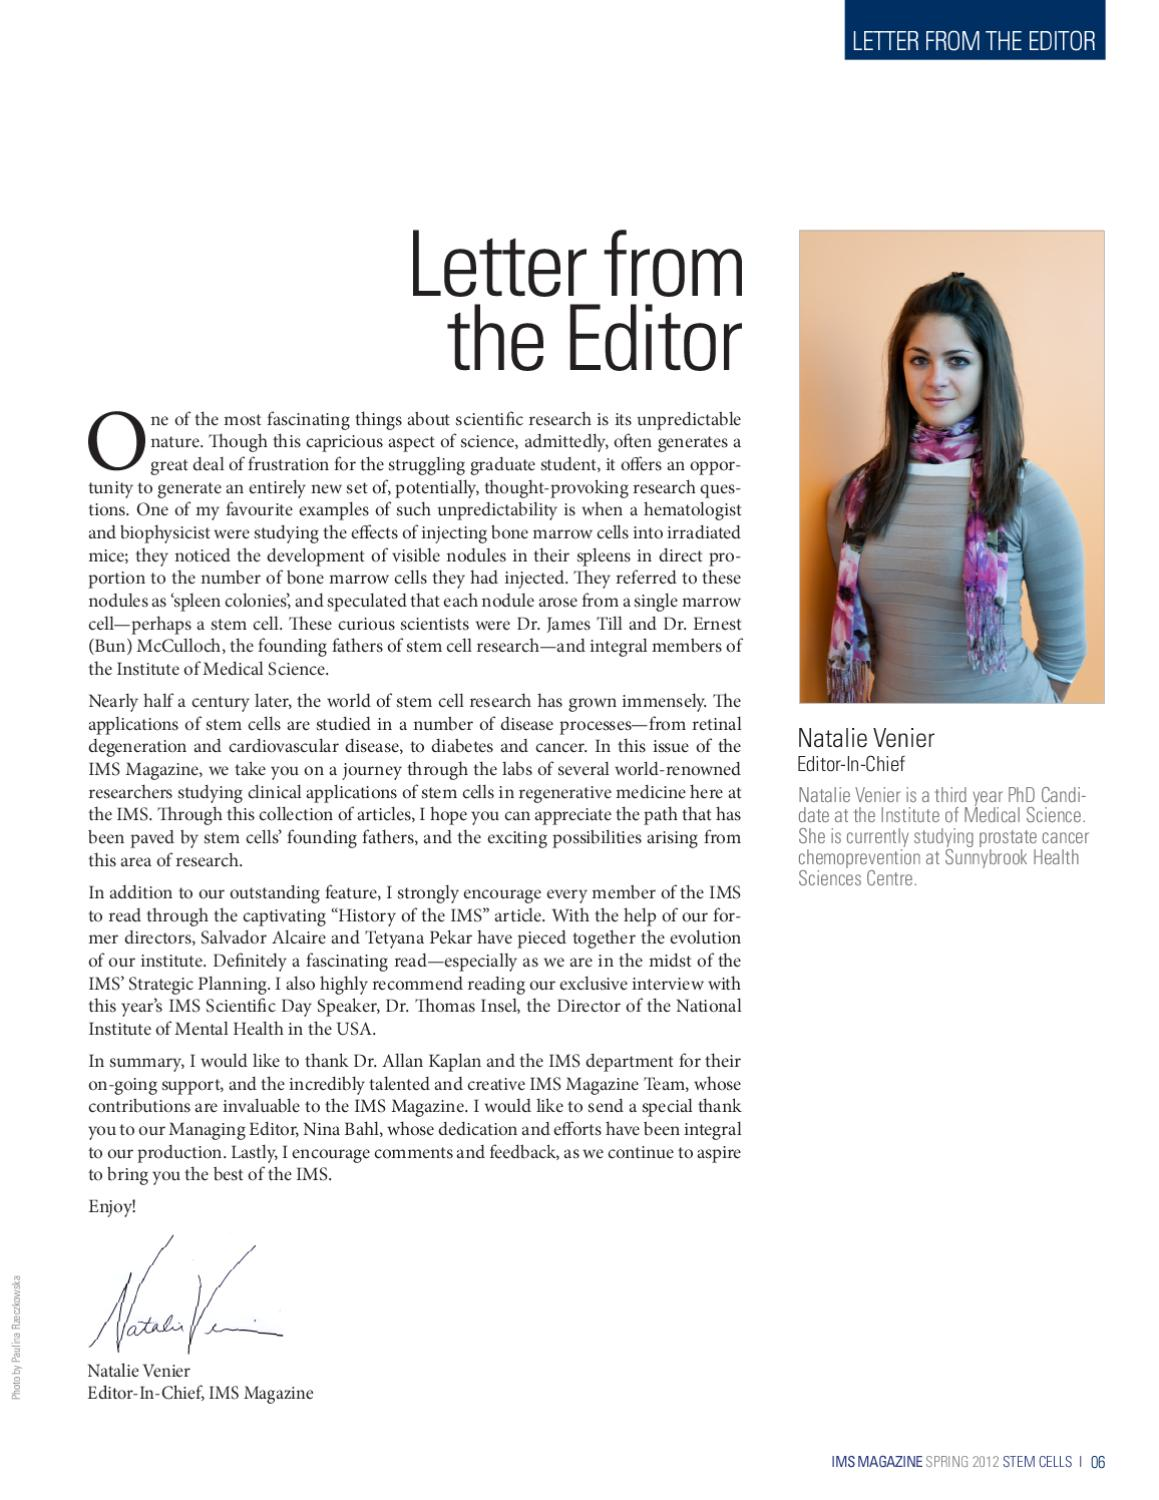 How To Write A Letter From The Editor Magazine